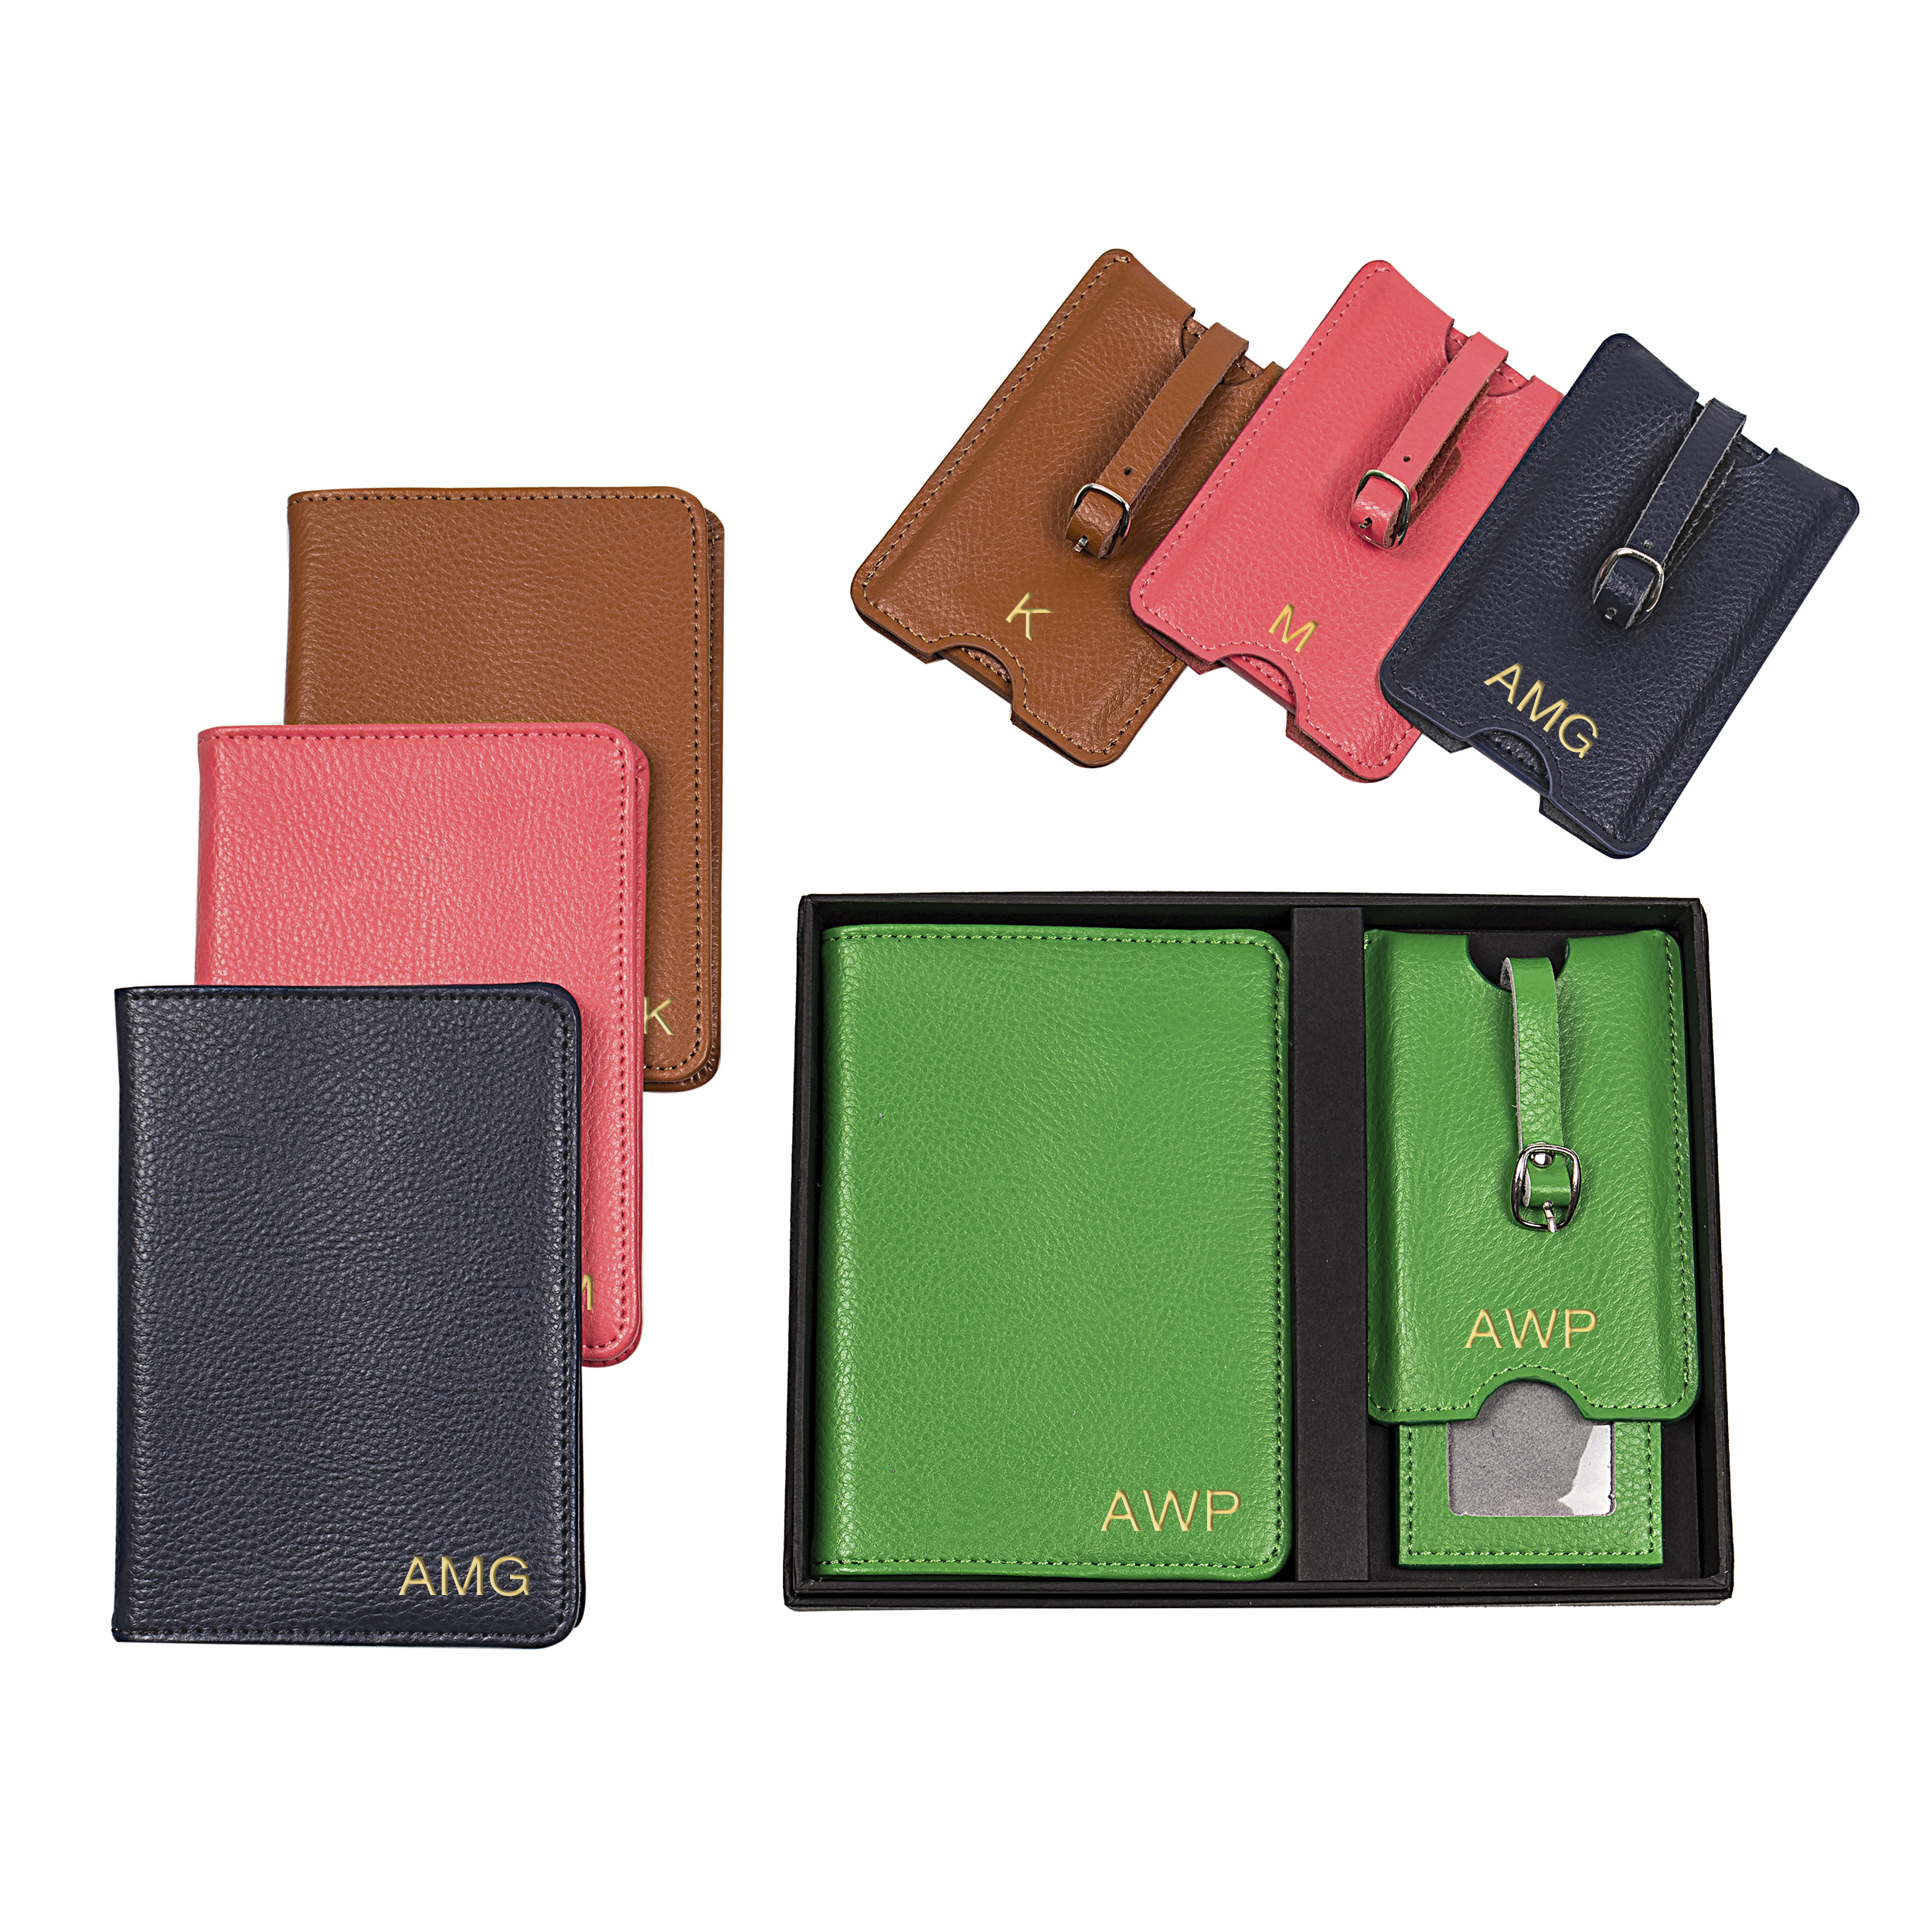 Personalized Leather Passport Holder & Luggage Tag Set